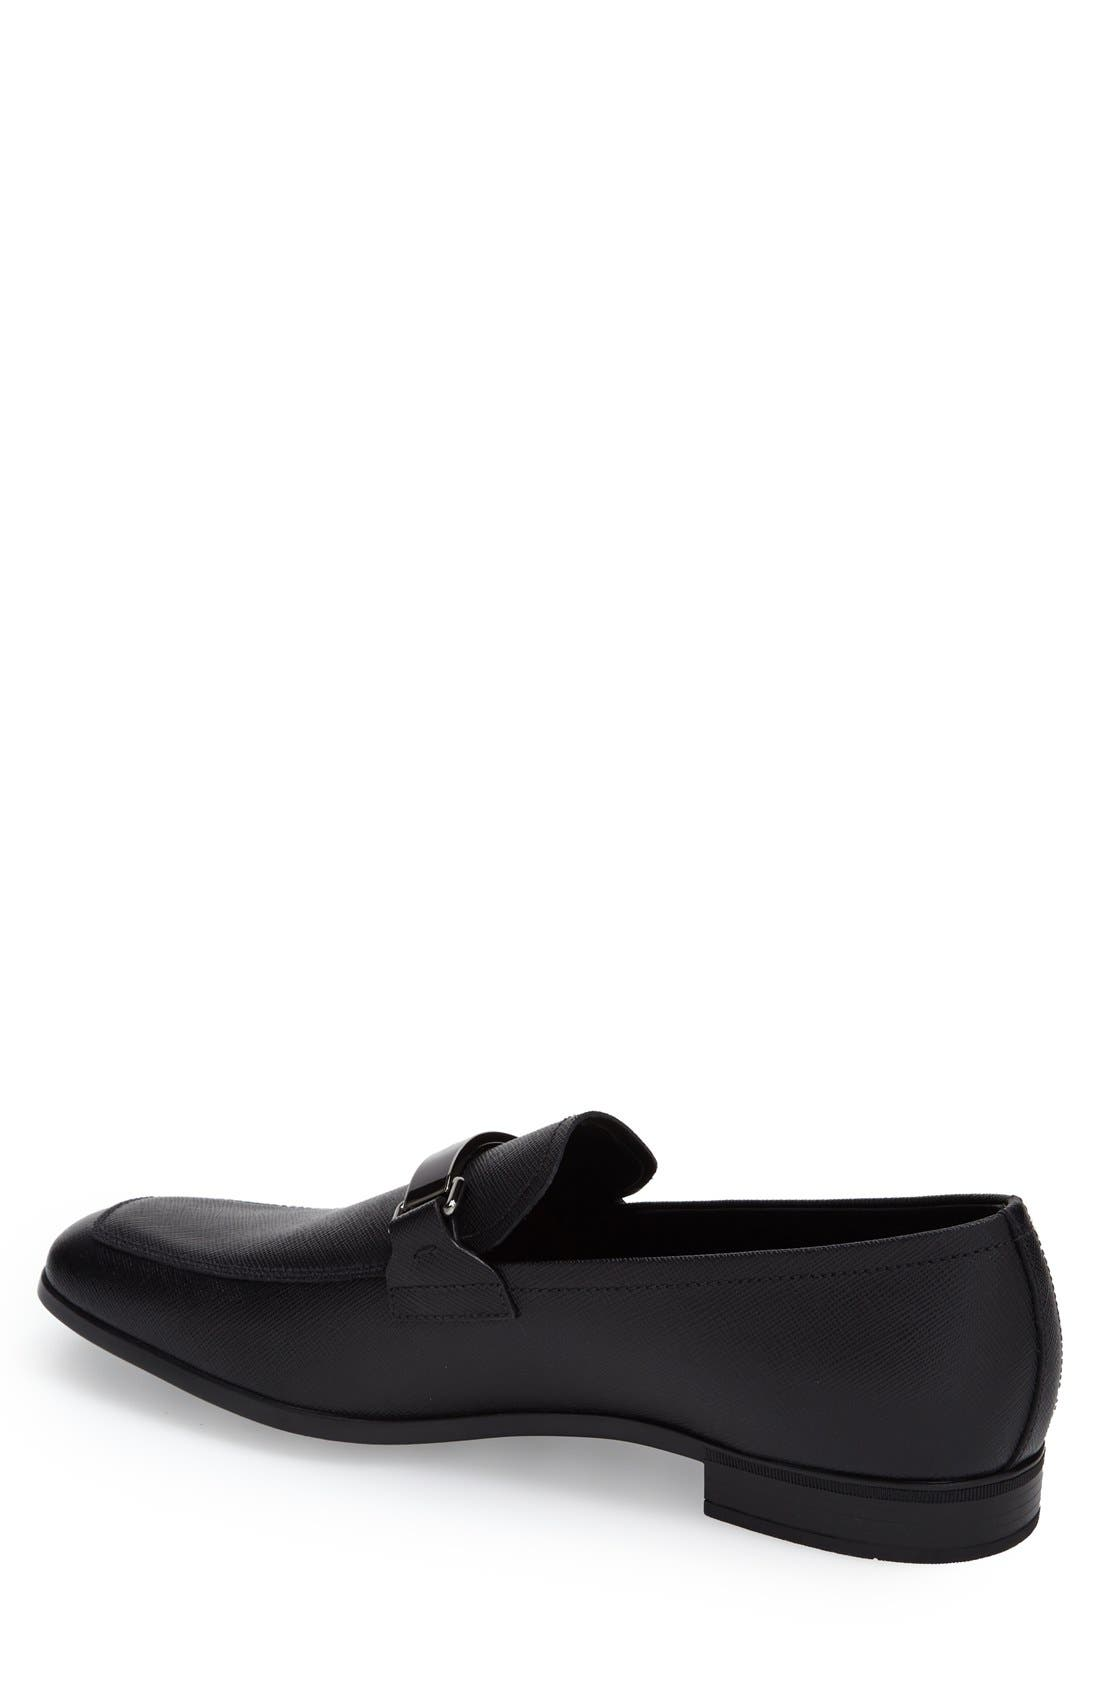 PRADA, Saffiano Leather Bit Loafer, Alternate thumbnail 2, color, NERO LEATHER